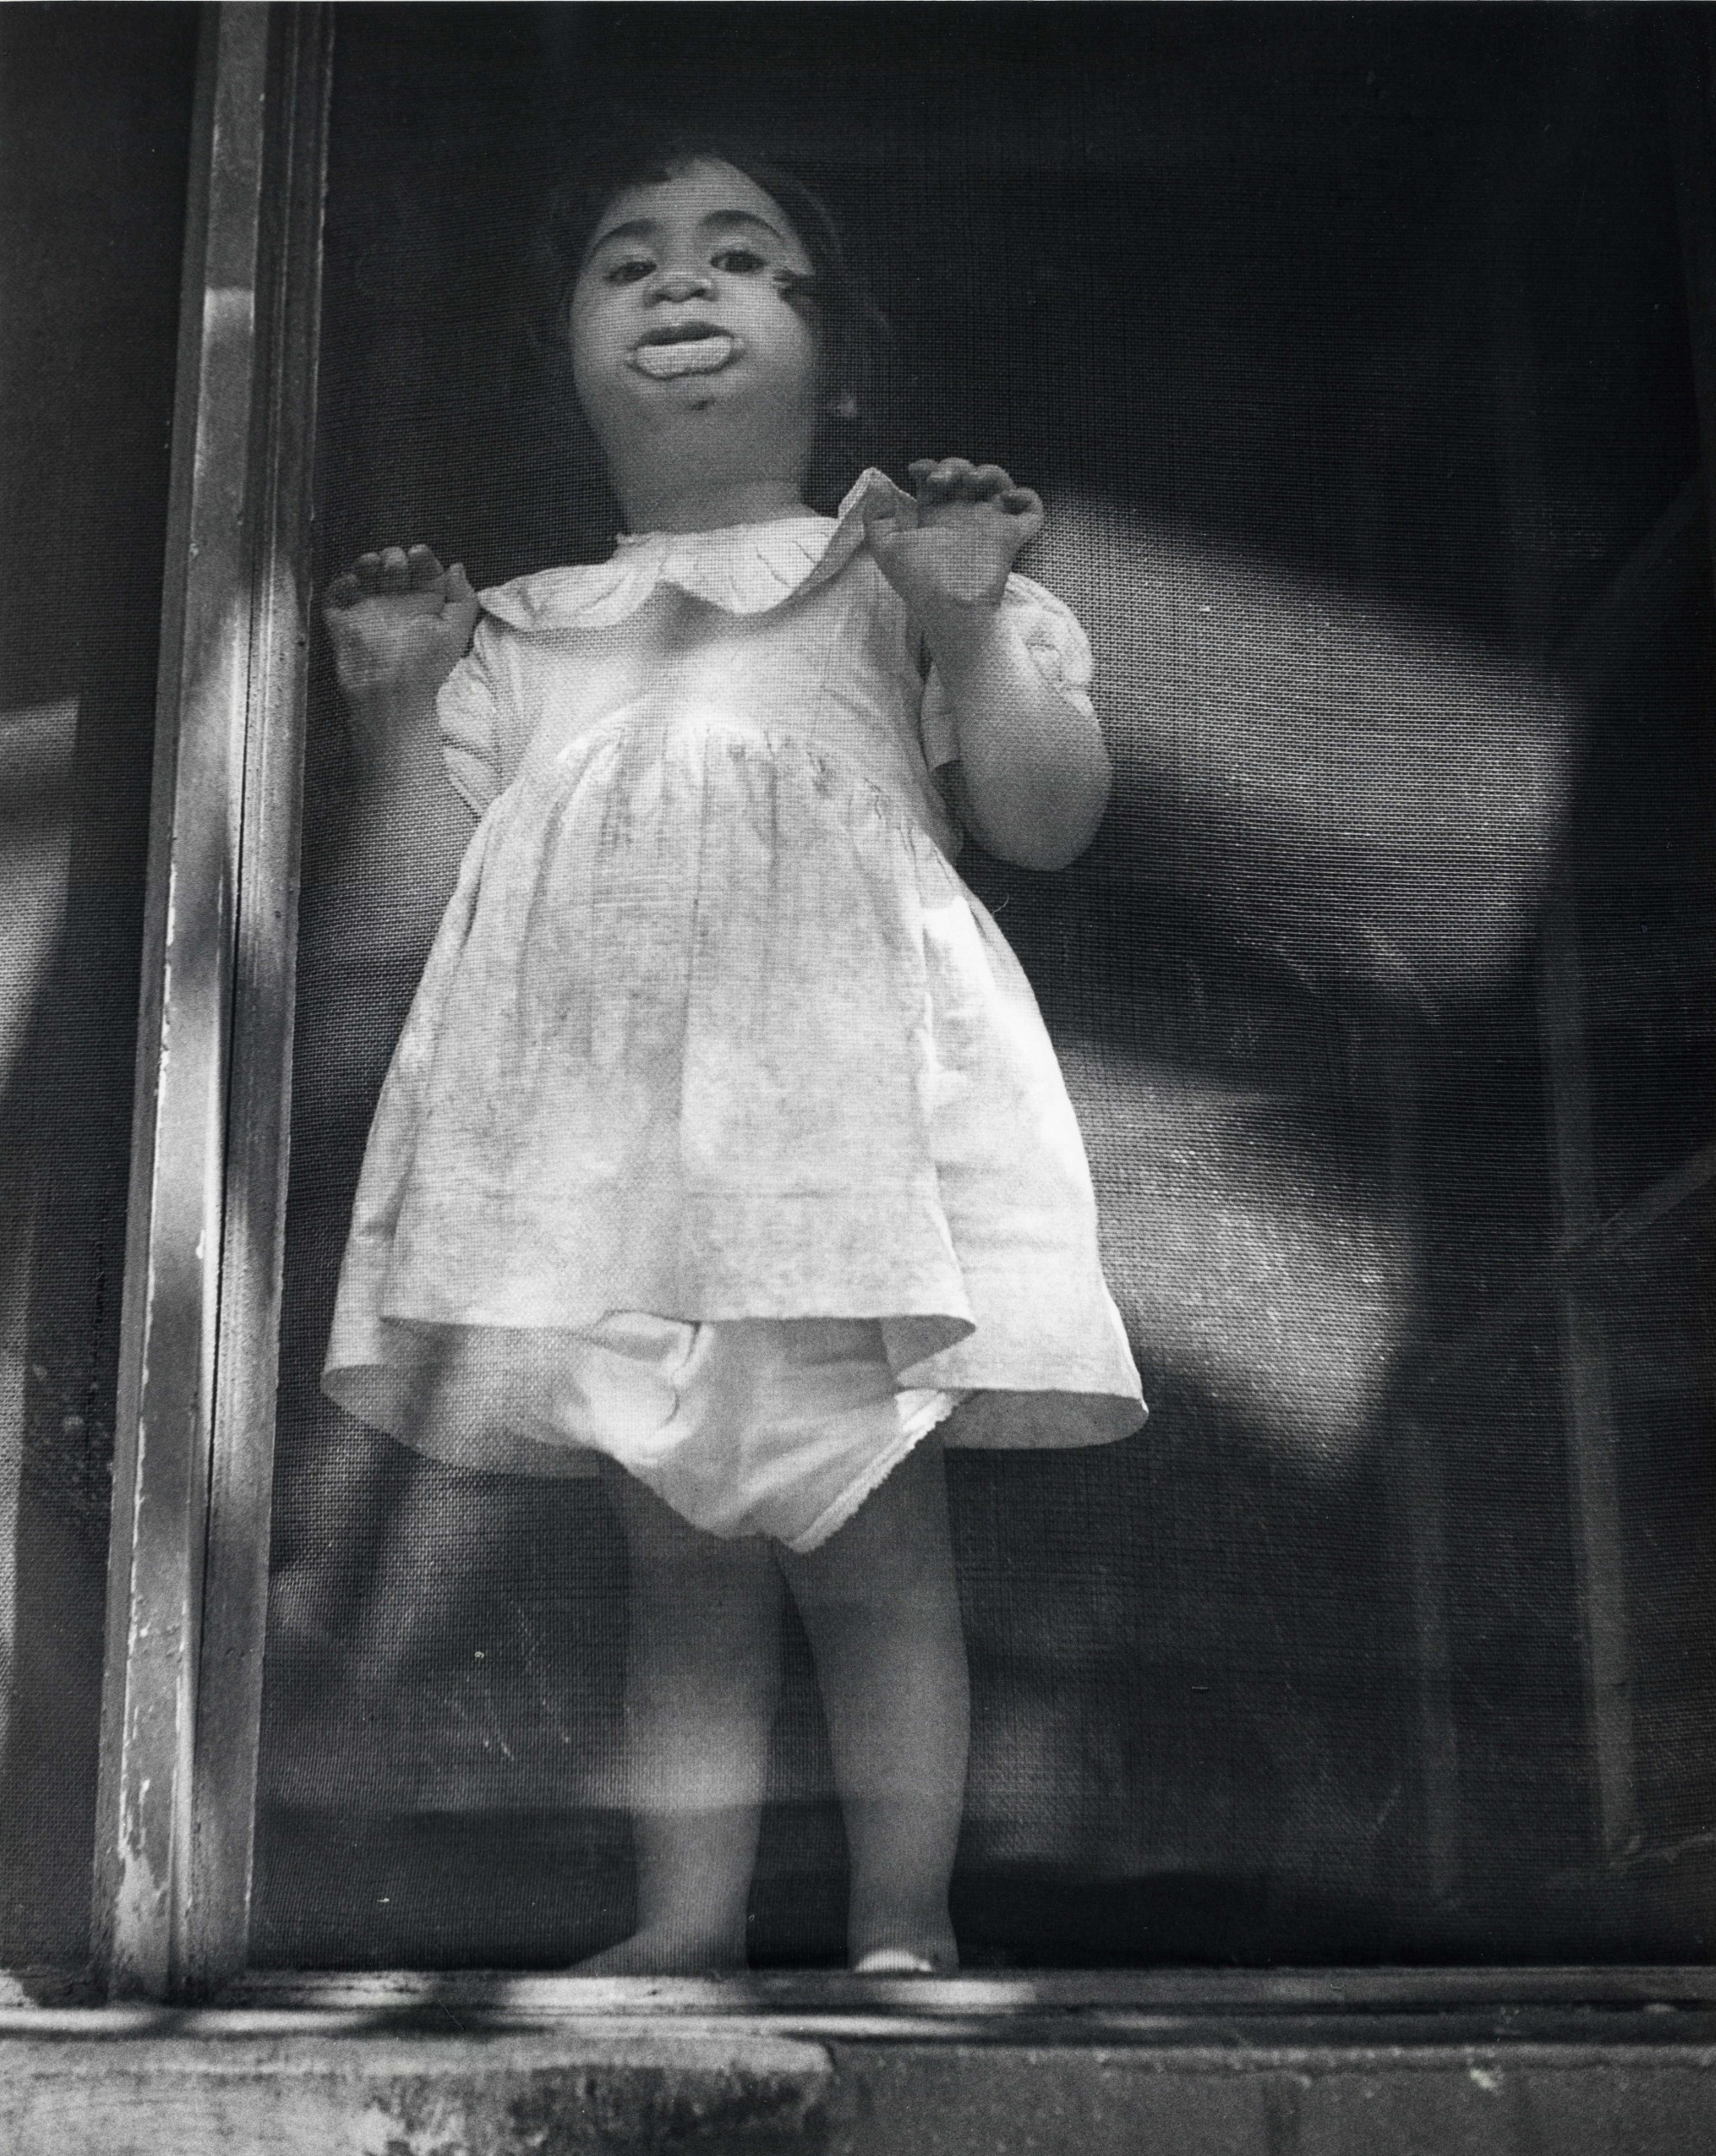 The Screen, Child in Window, Lower East Side, 1951